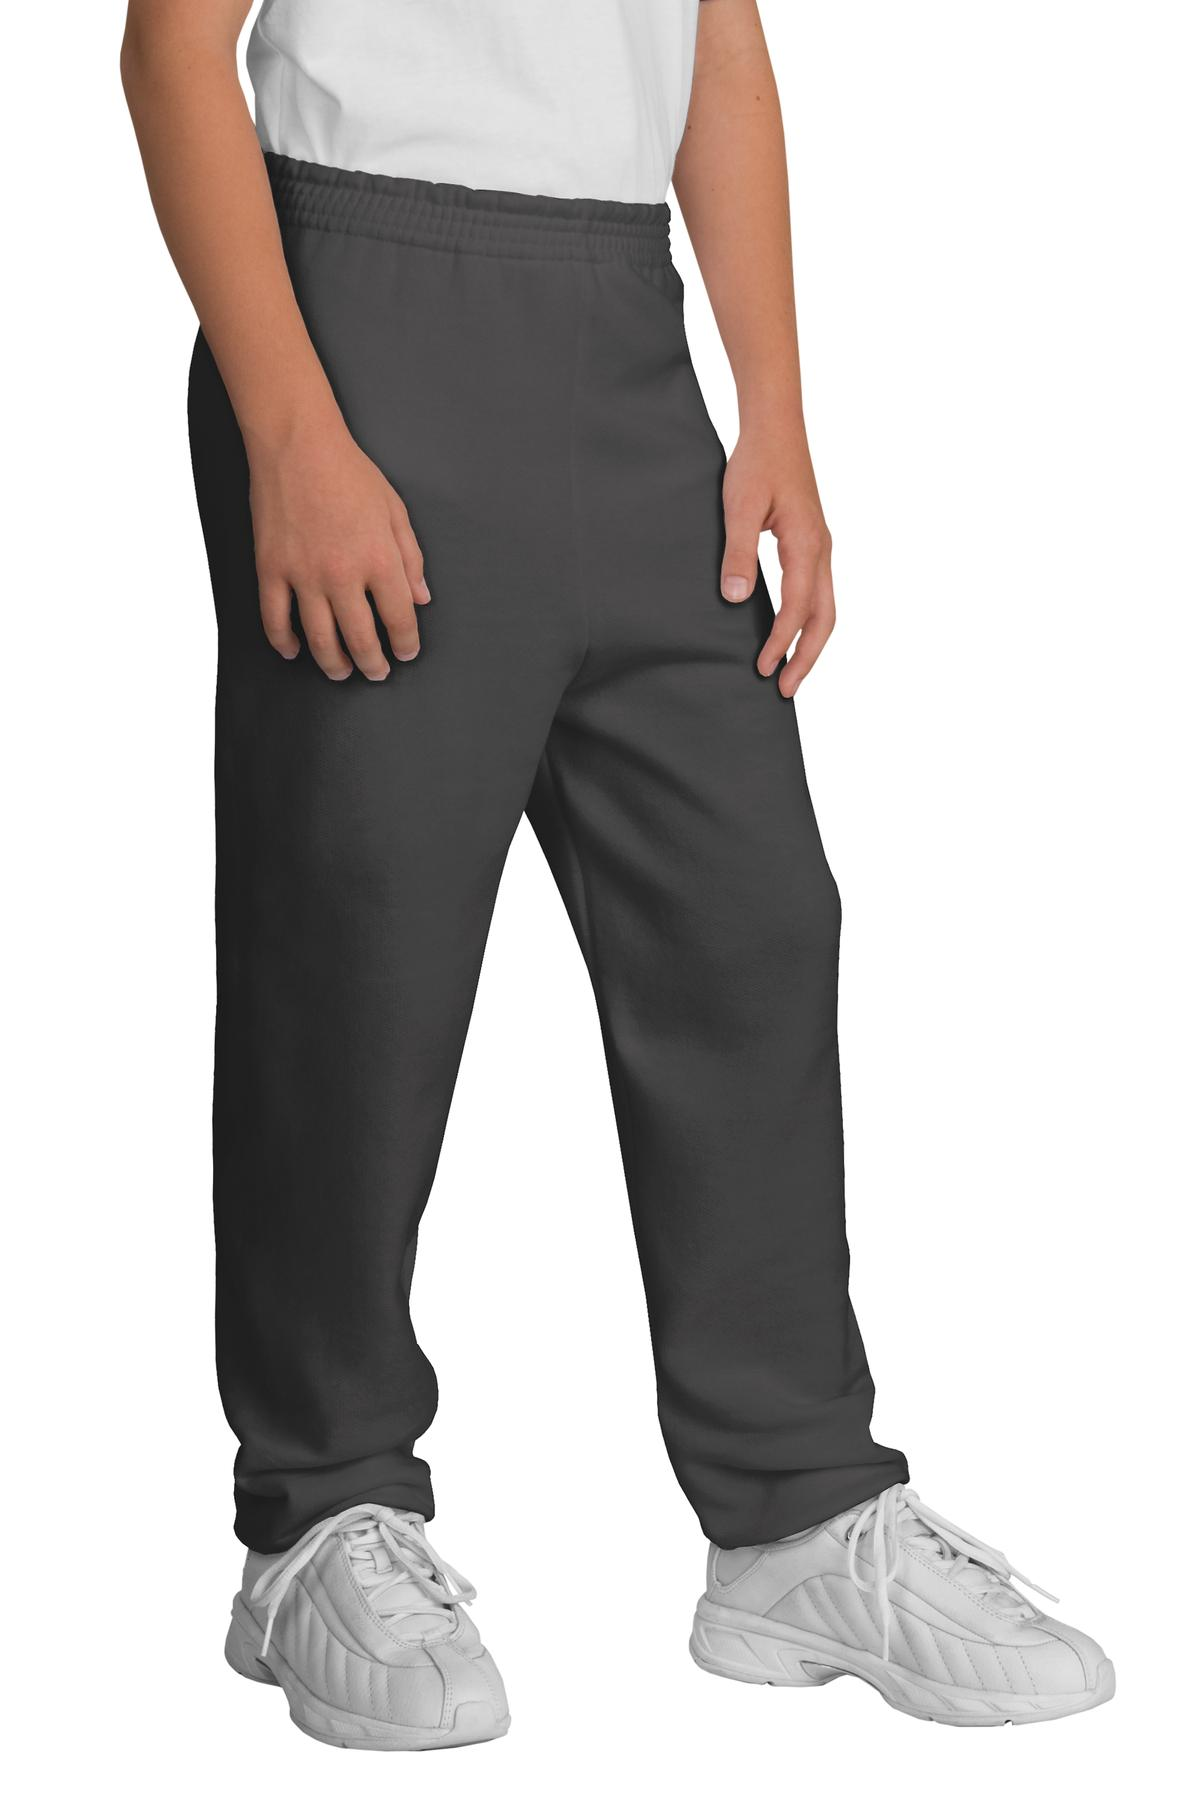 Port & Company ®  - Youth Core Fleece Sweatpant.  PC90YP - Charcoal